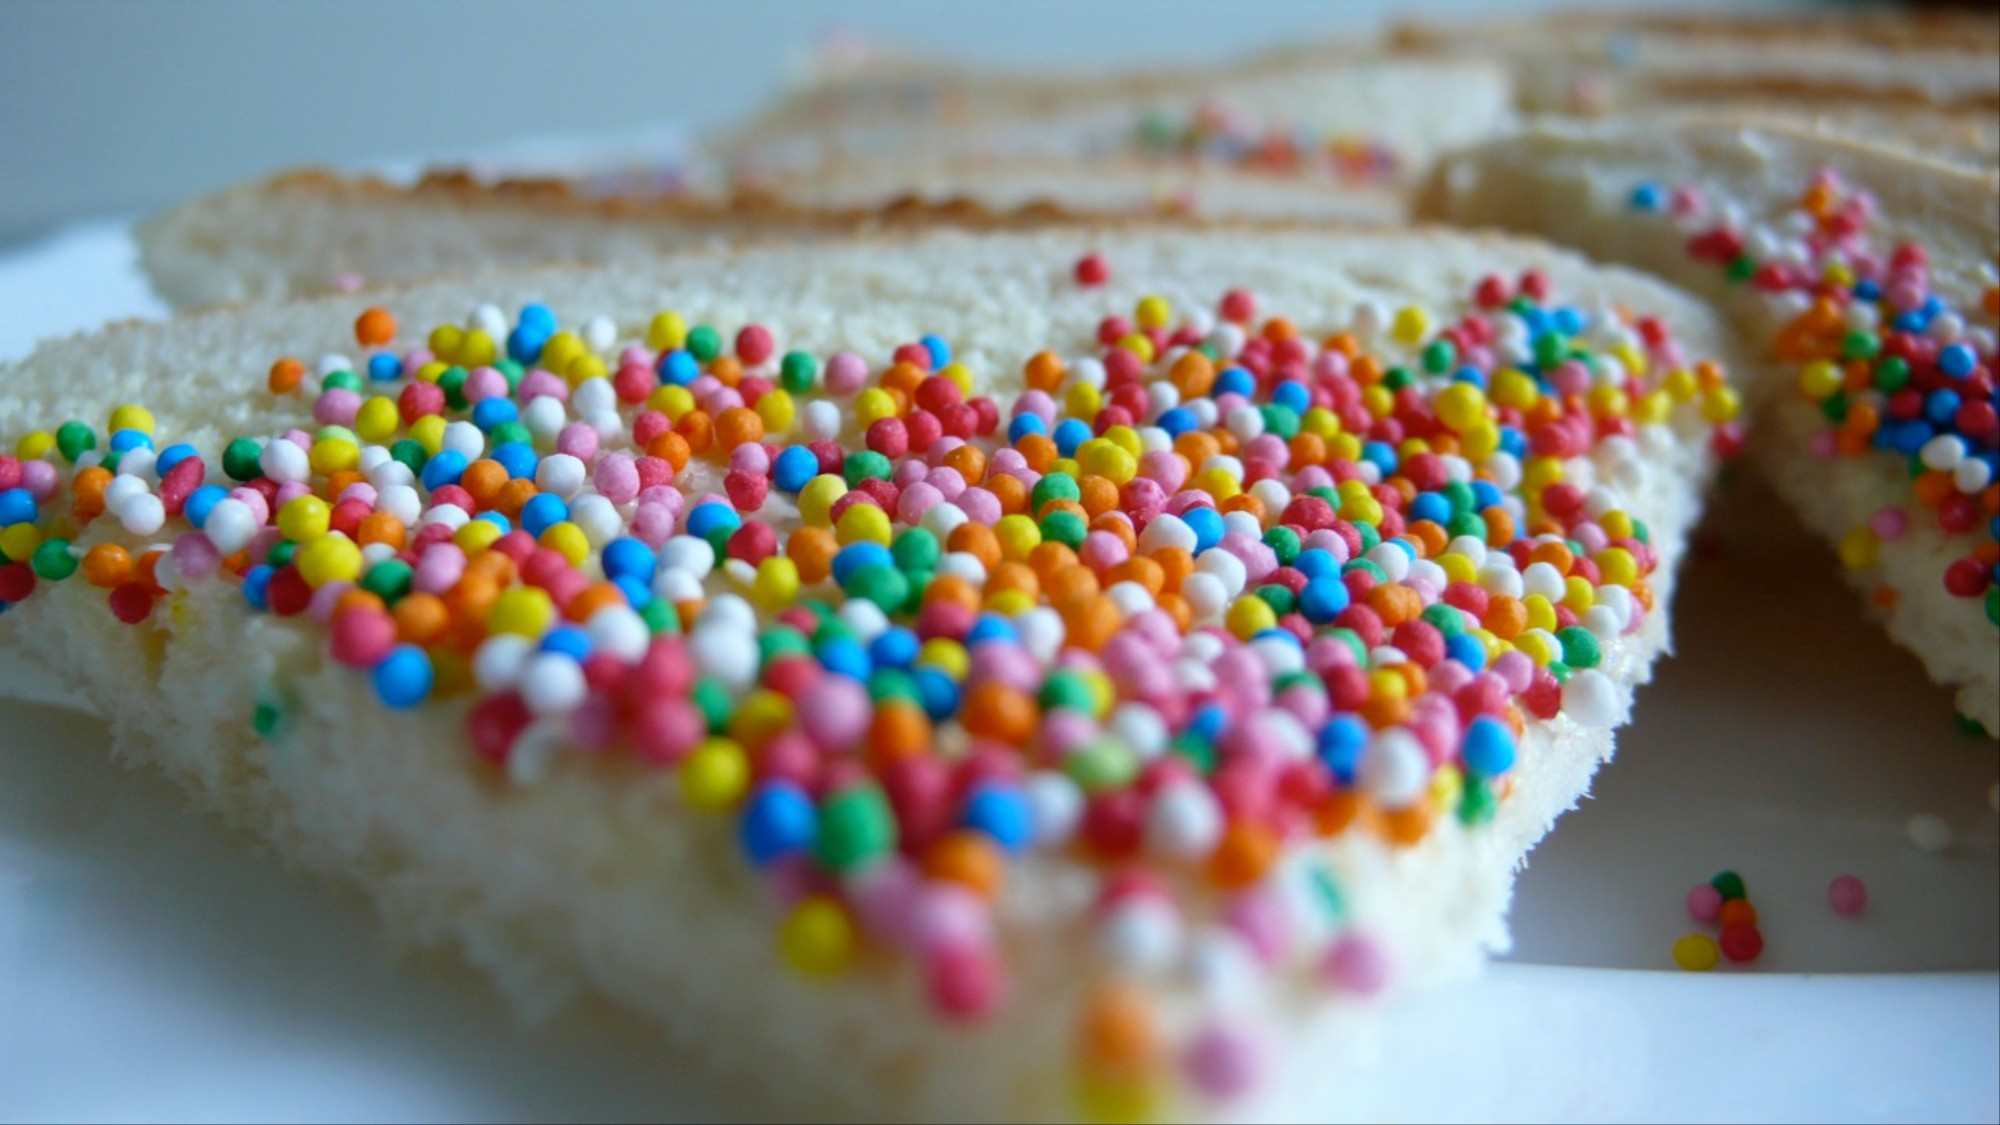 Australia, We Need to Talk About Fairy Bread - VICE